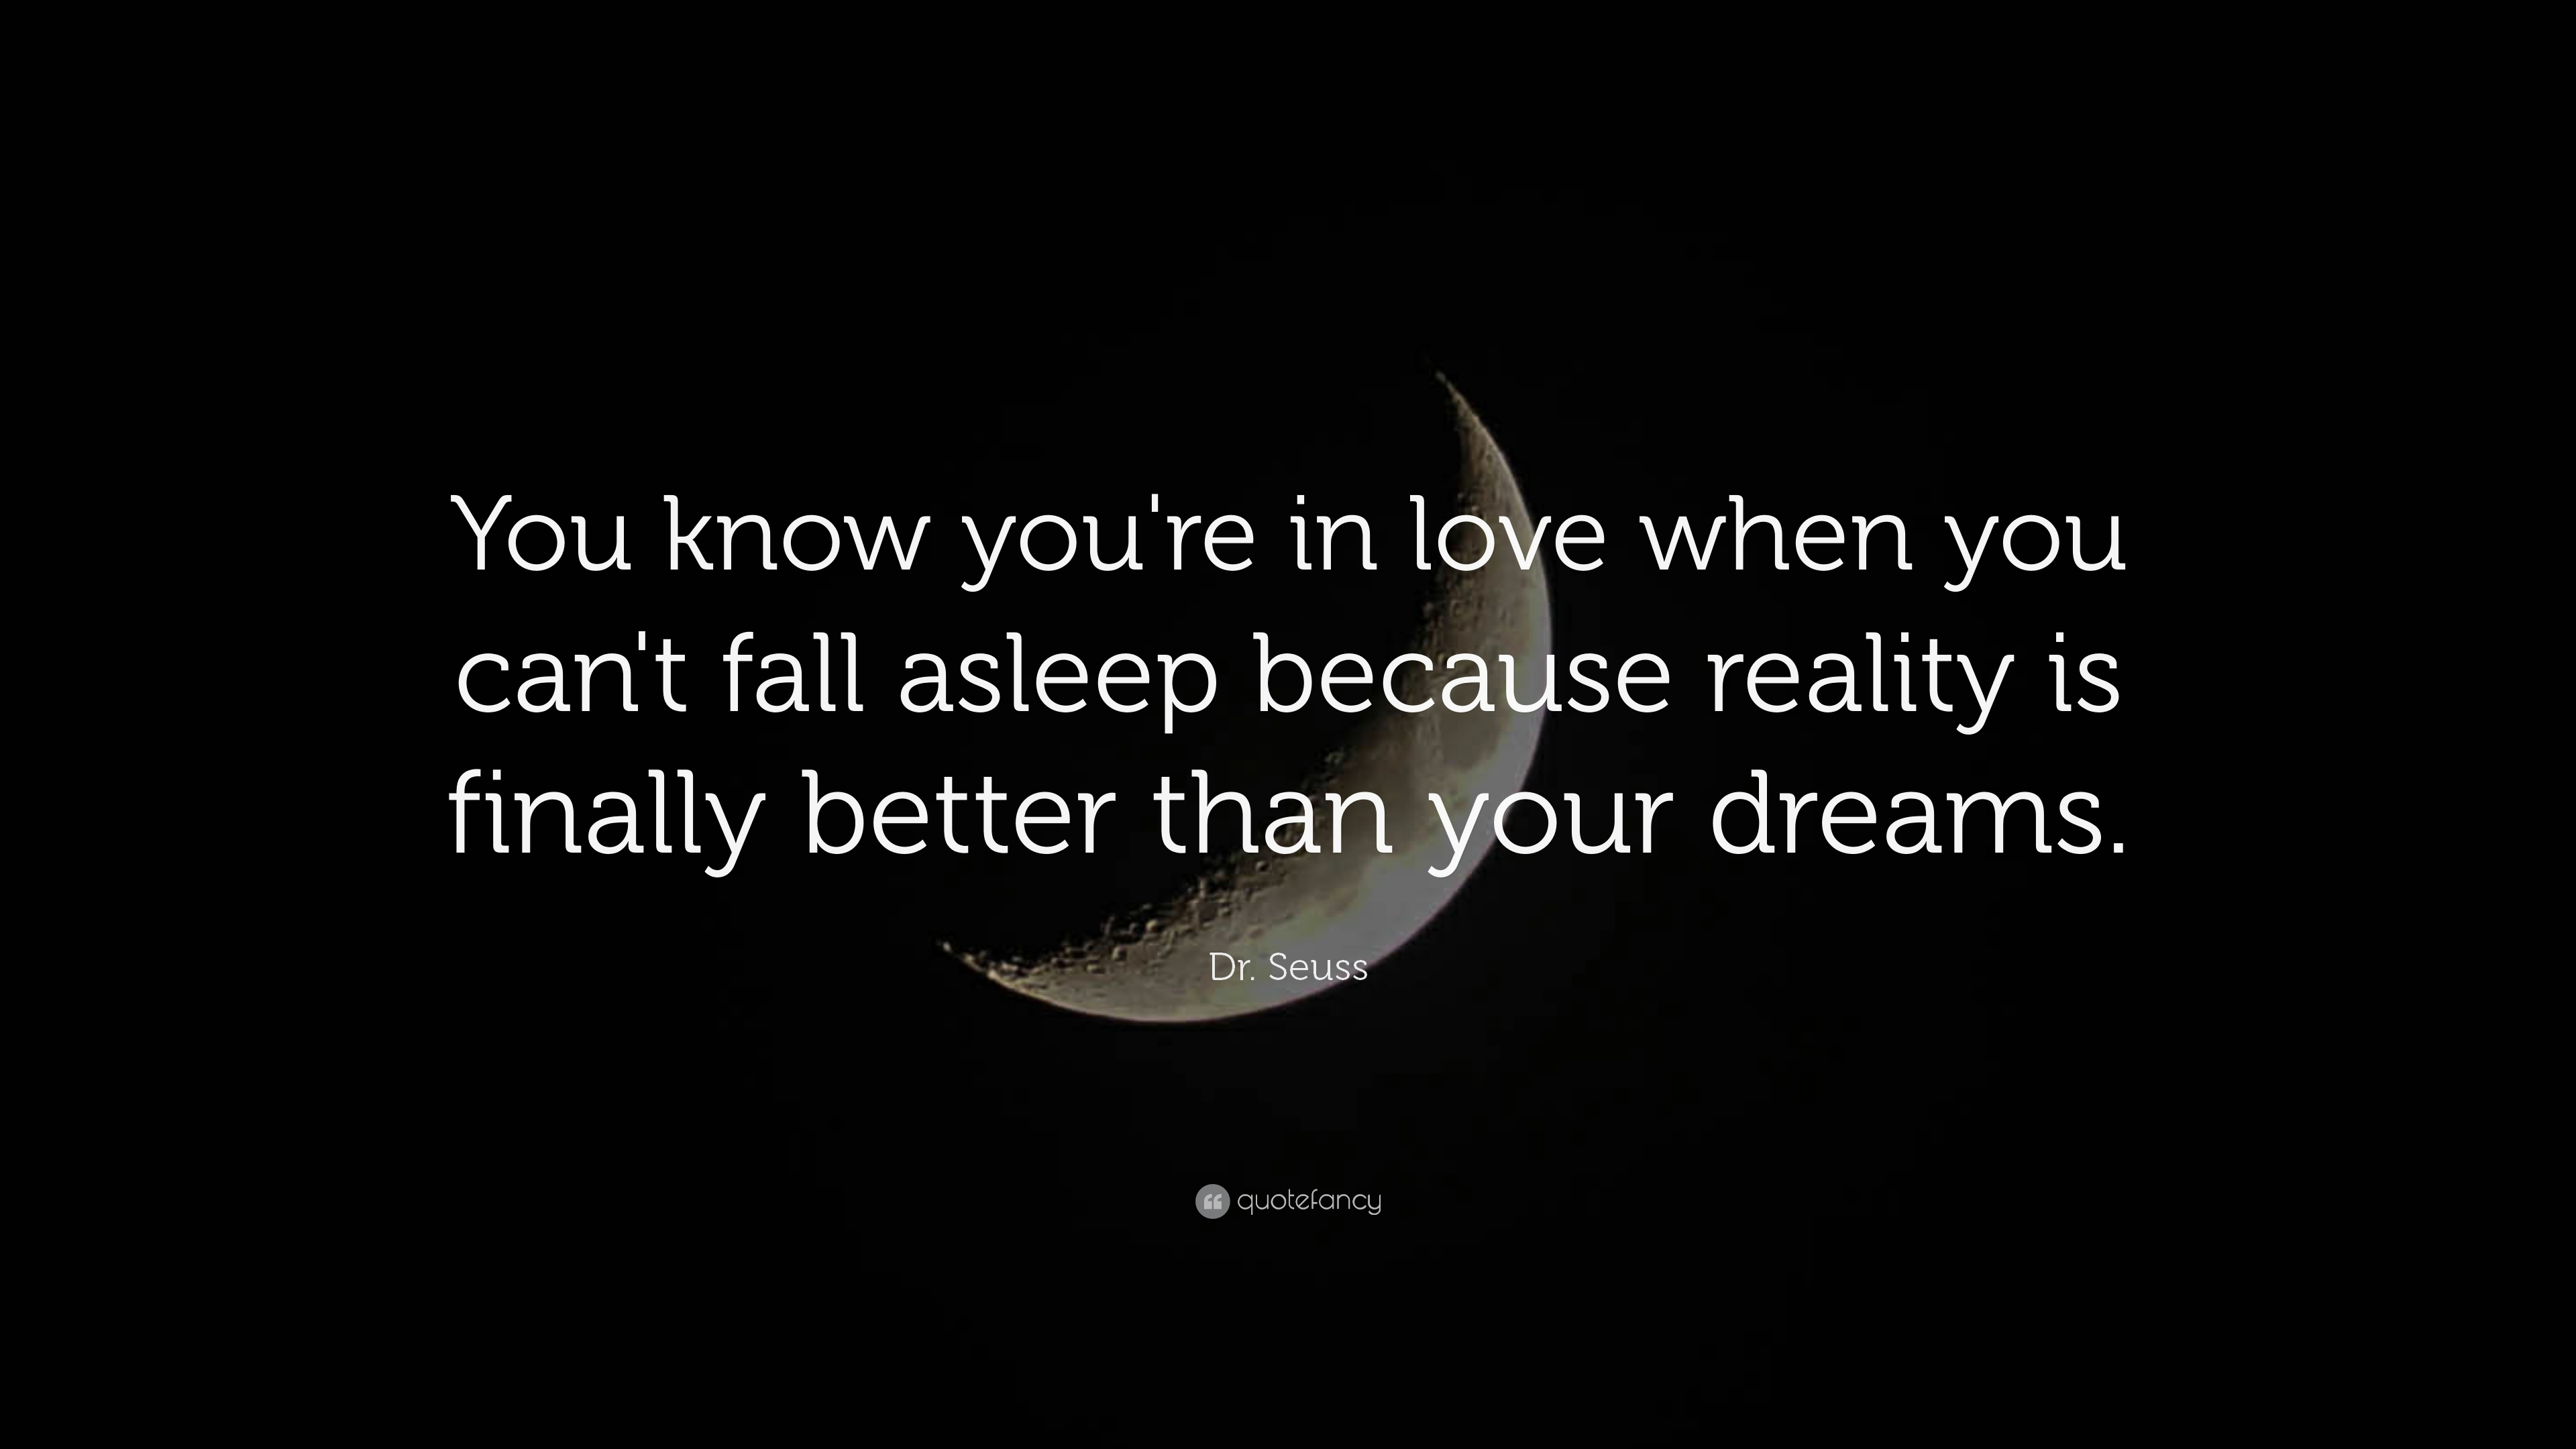 Simple 5801 Dr Seuss Quote You Know You Re Love When You Can T Fall Asleep Love Quotes Images Download Love Quotes Images inspiration Love Quotes Images